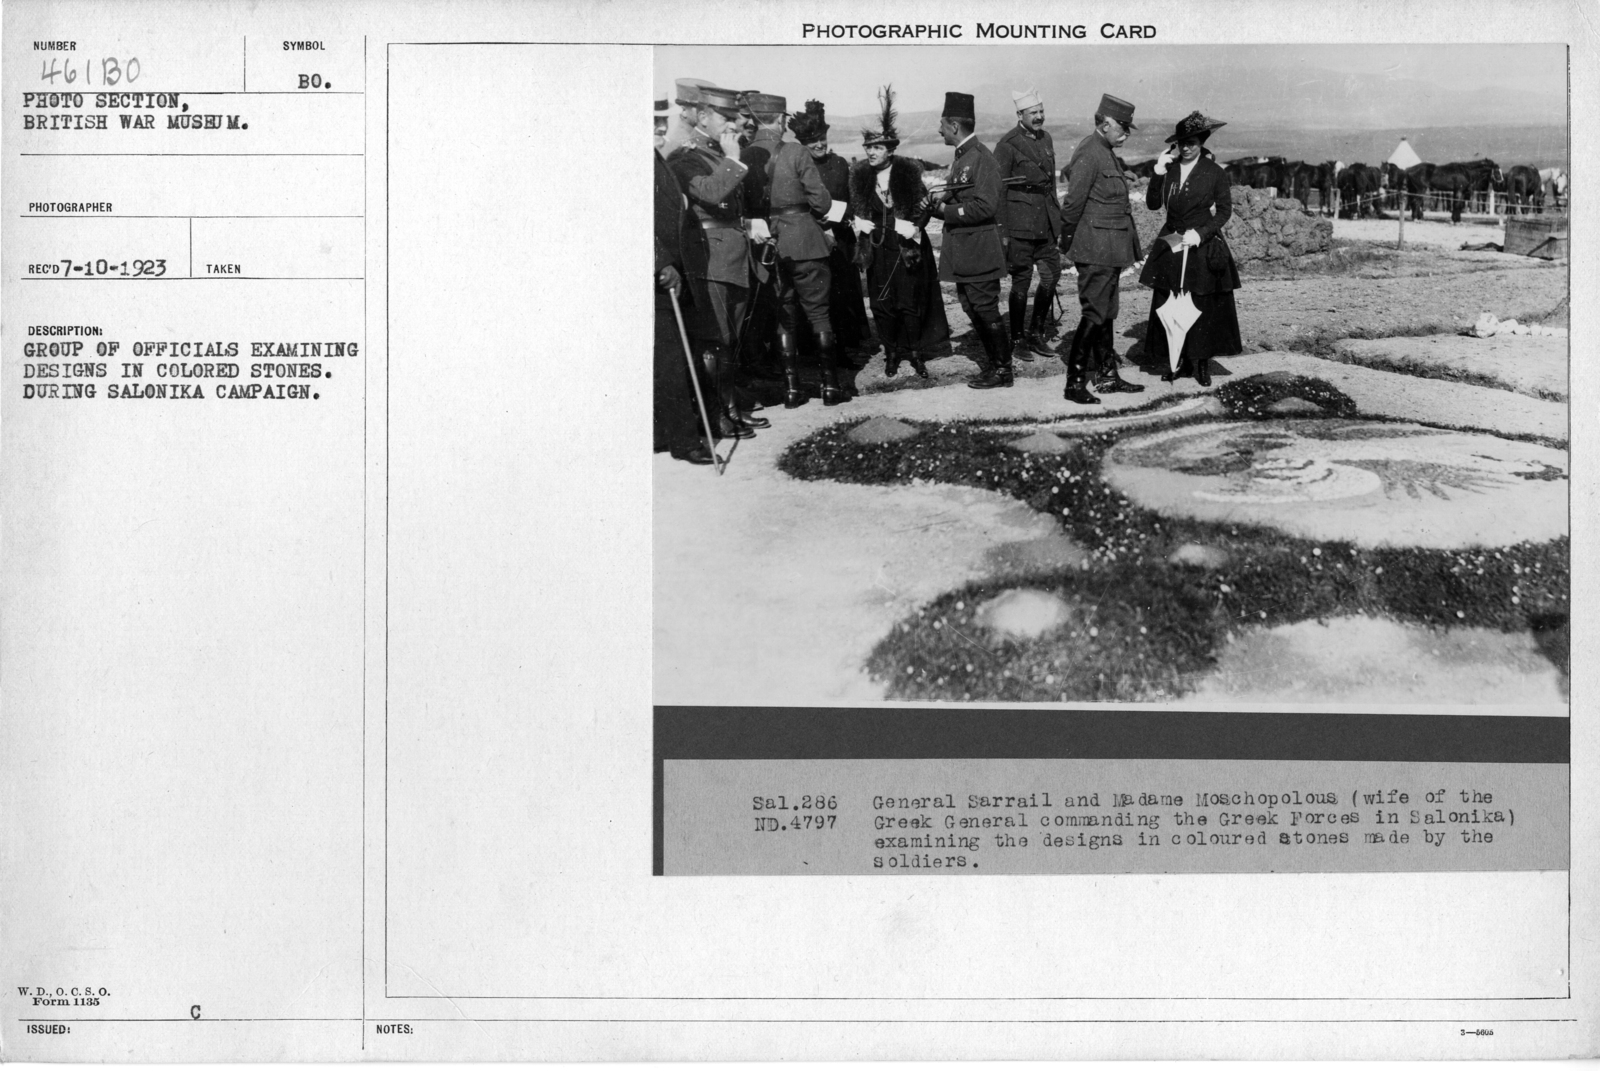 Group of officials examining designs in colored stones. During Salonika Campaign